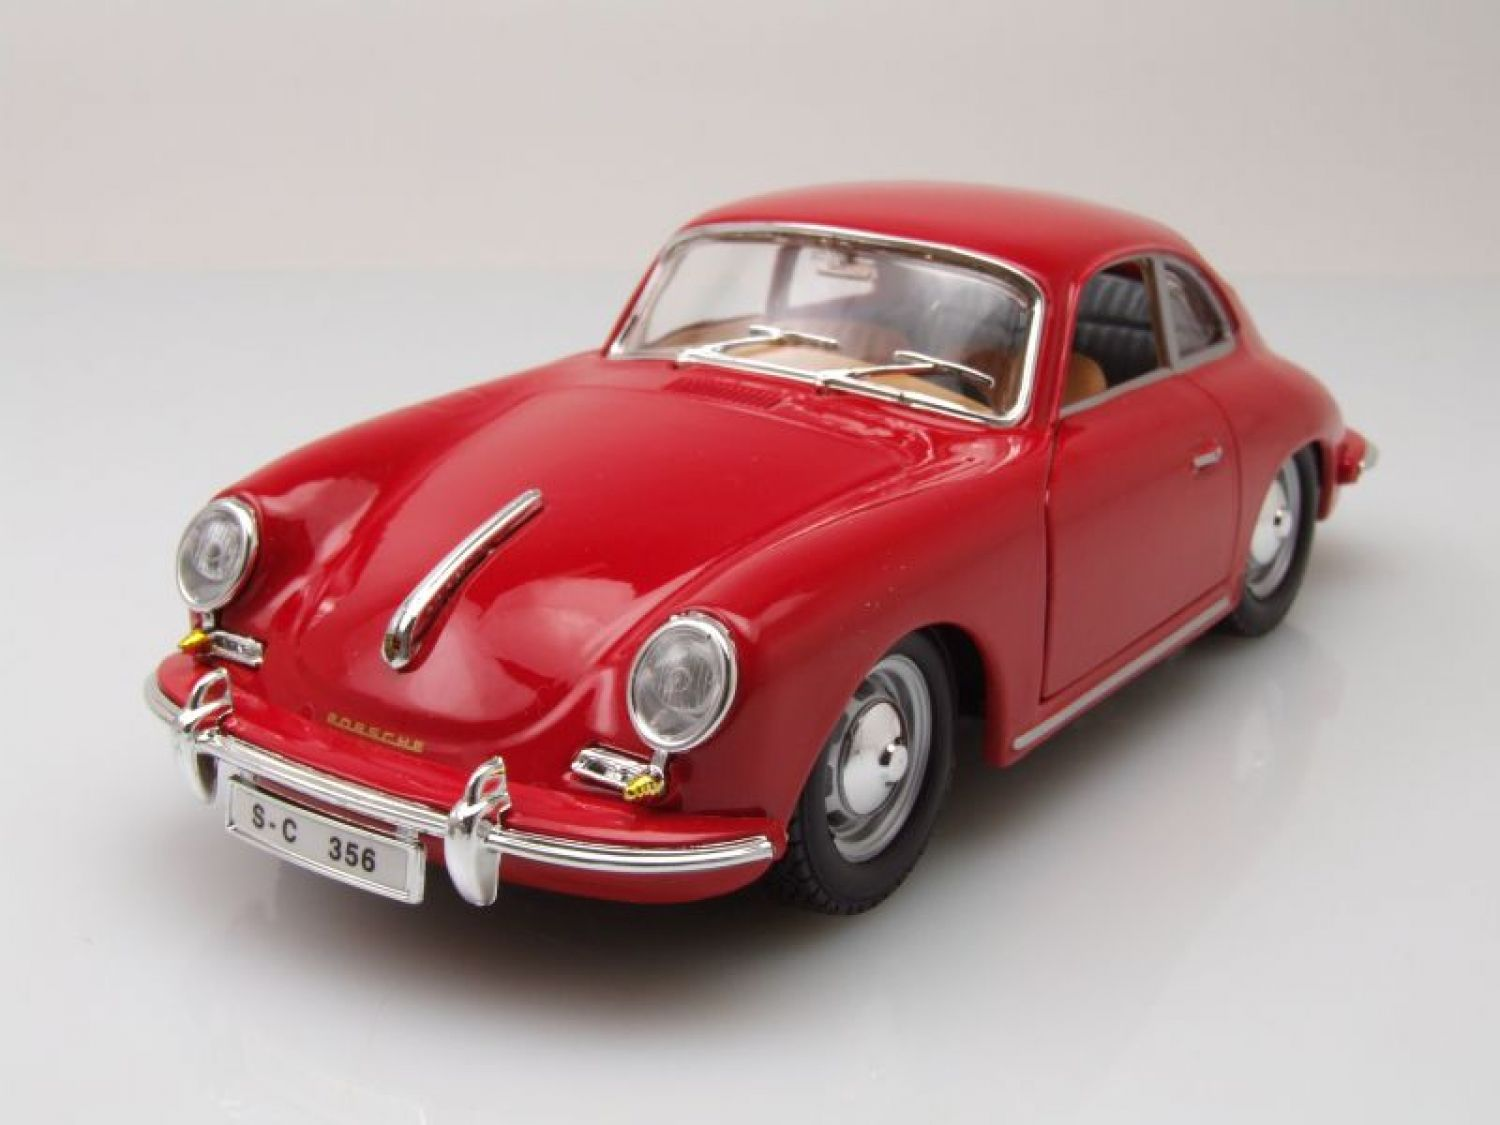 porsche 356 b coupe 1961 rot modellauto 1 24 burago ebay. Black Bedroom Furniture Sets. Home Design Ideas